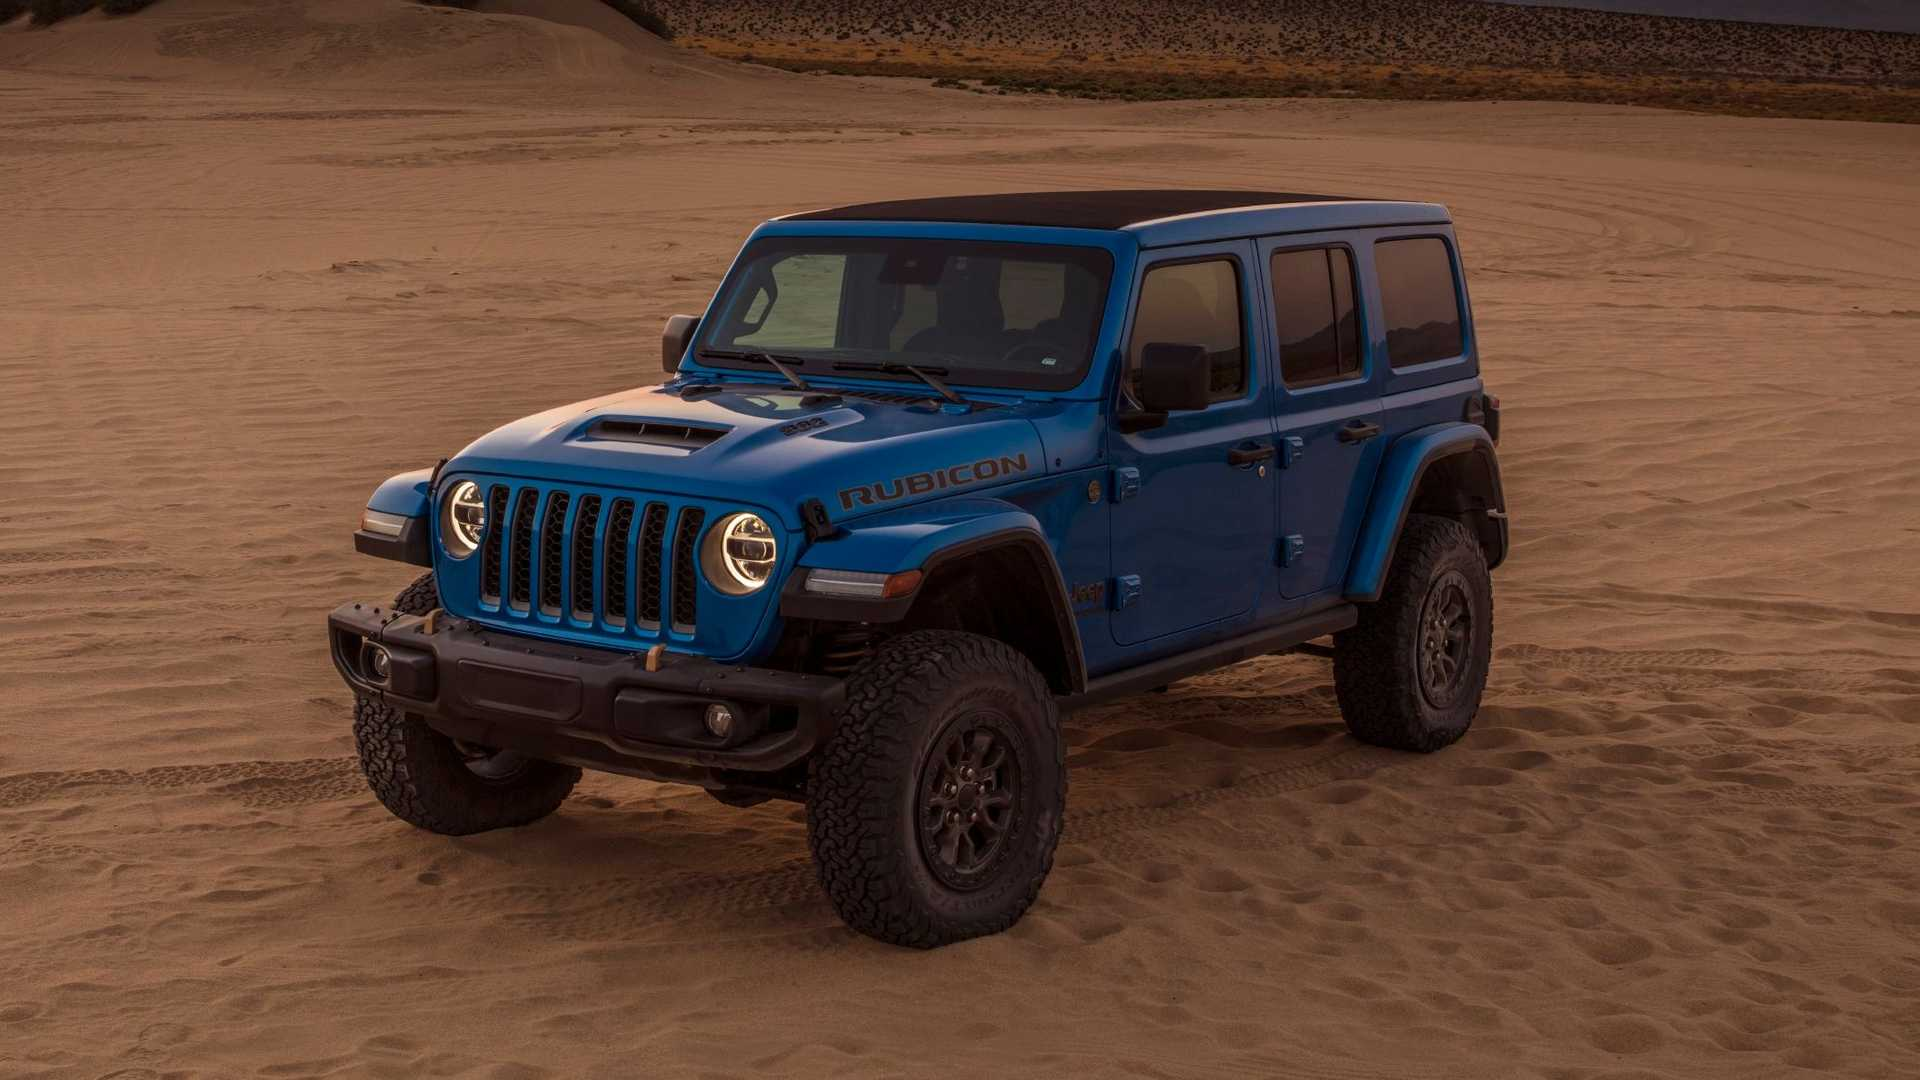 2021-jeep-wrangler-rubicon-392-front-view-1